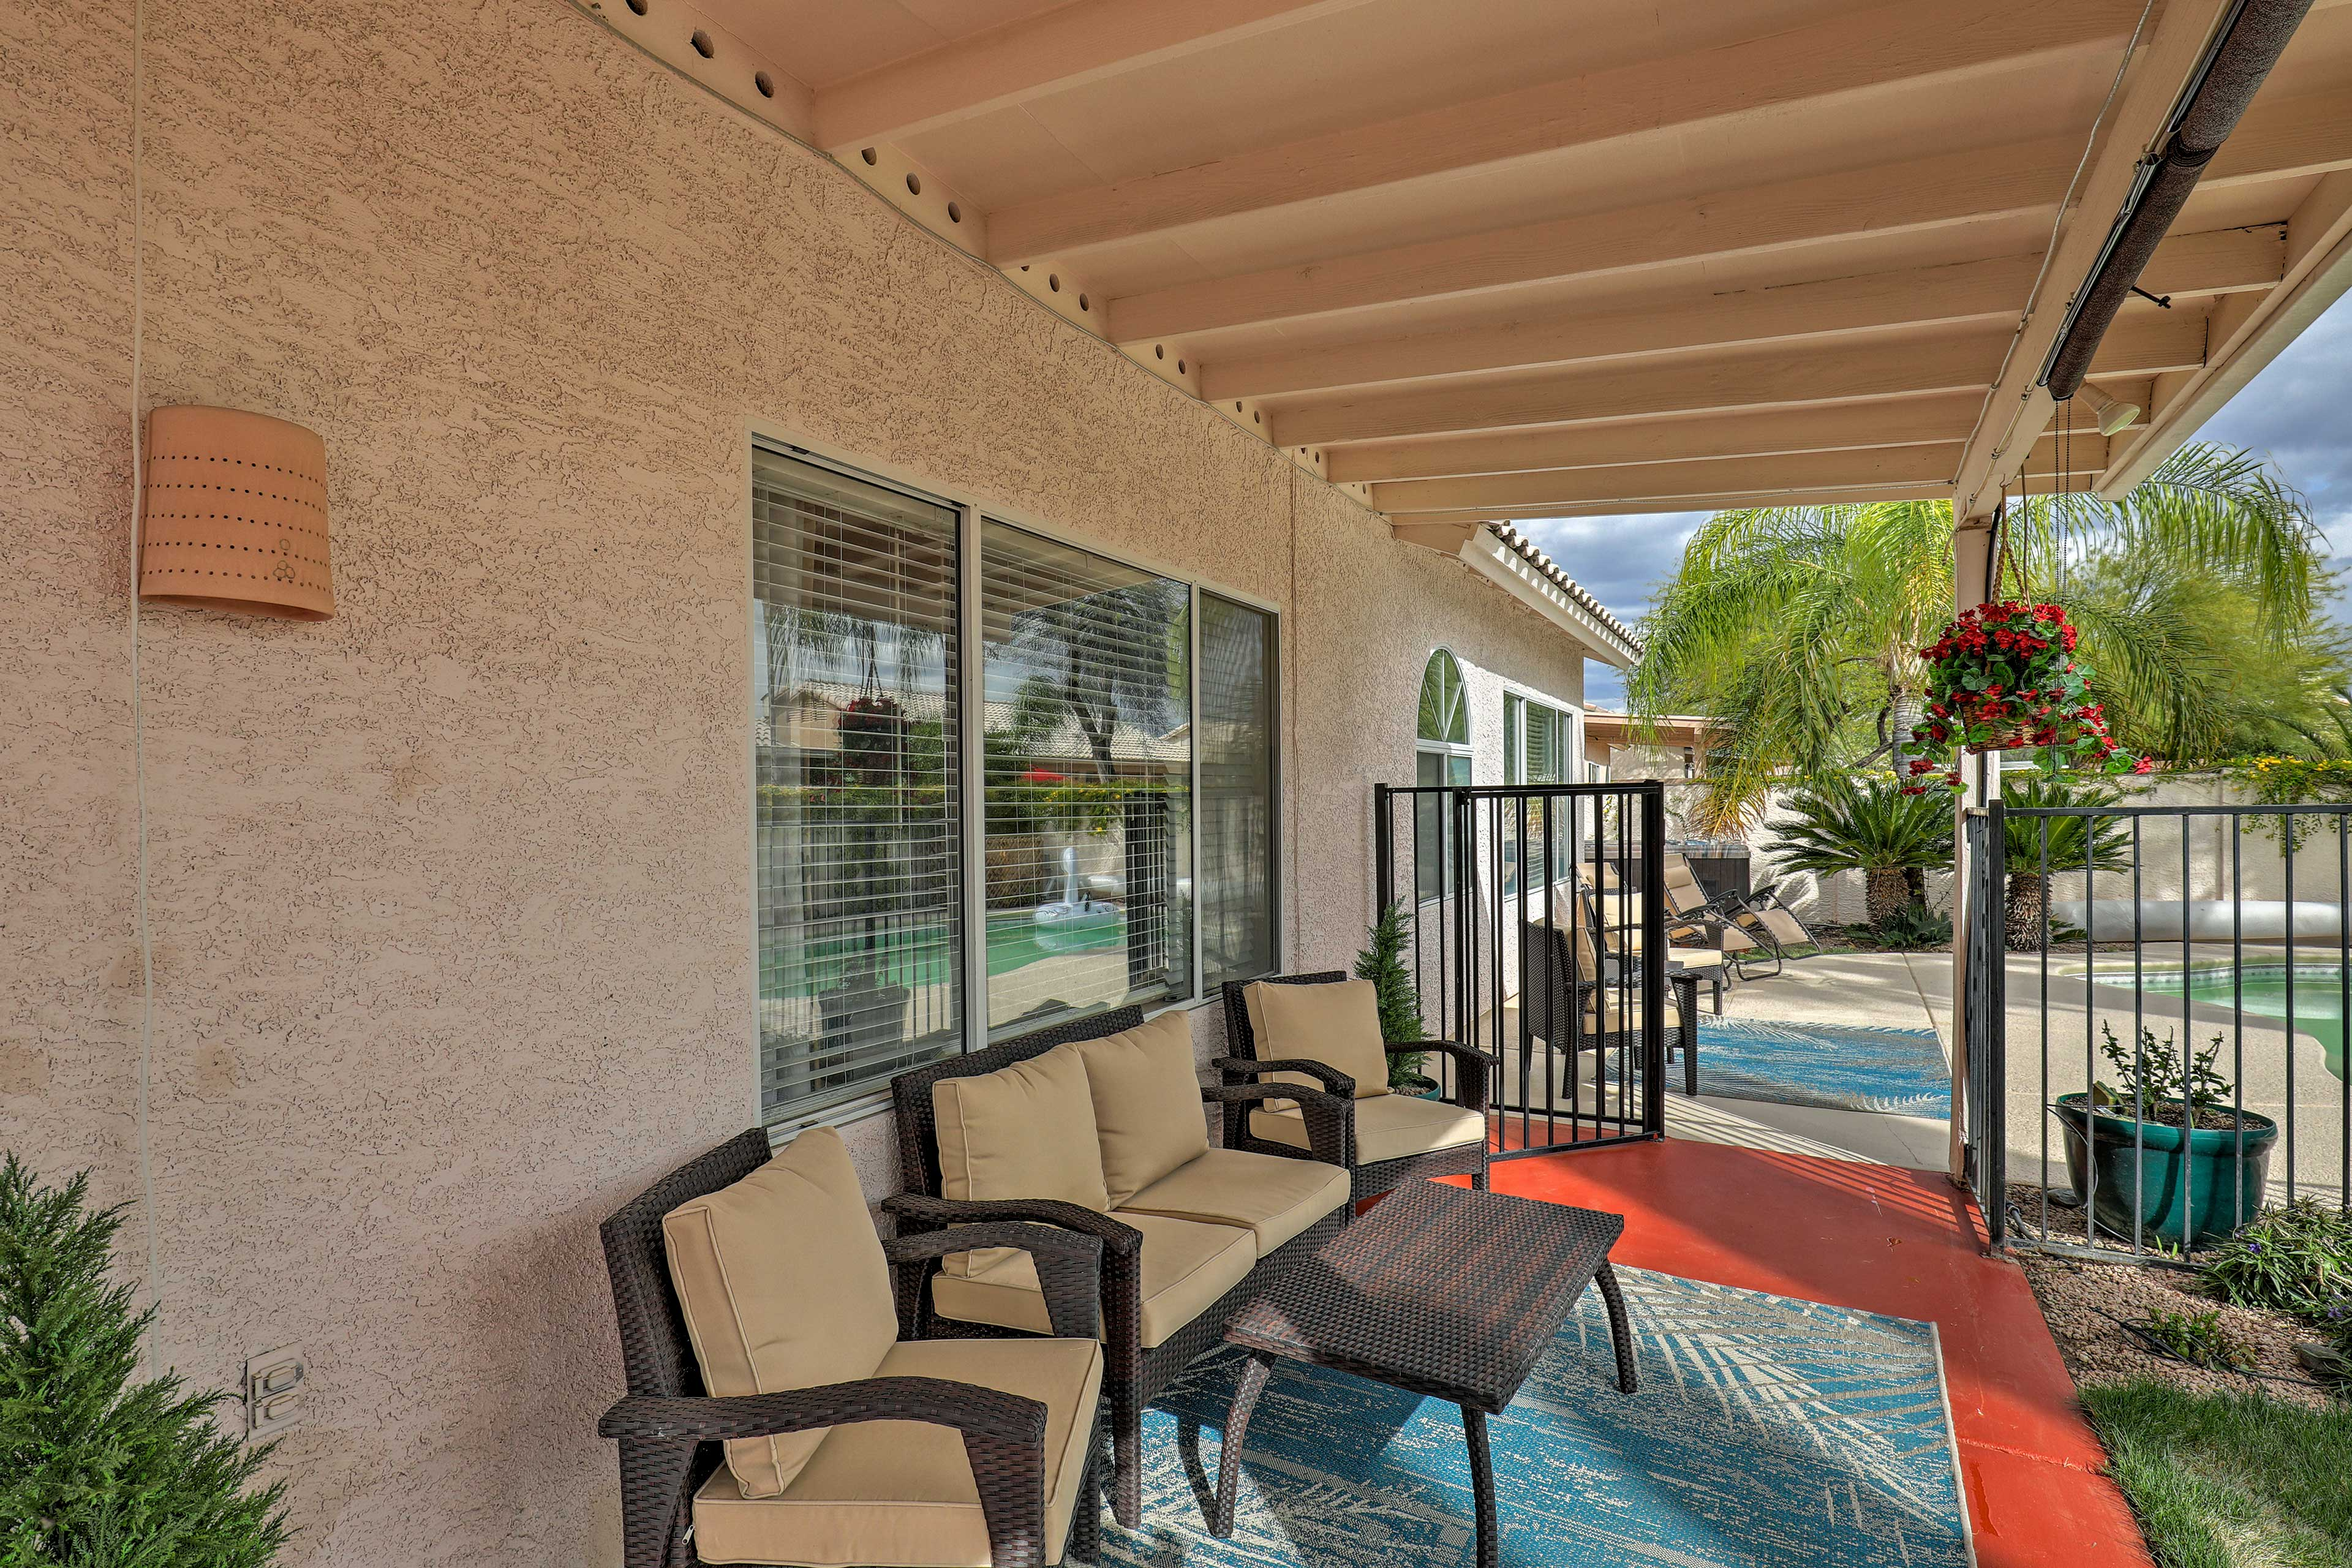 Sip your morning coffee from this covered patio space.